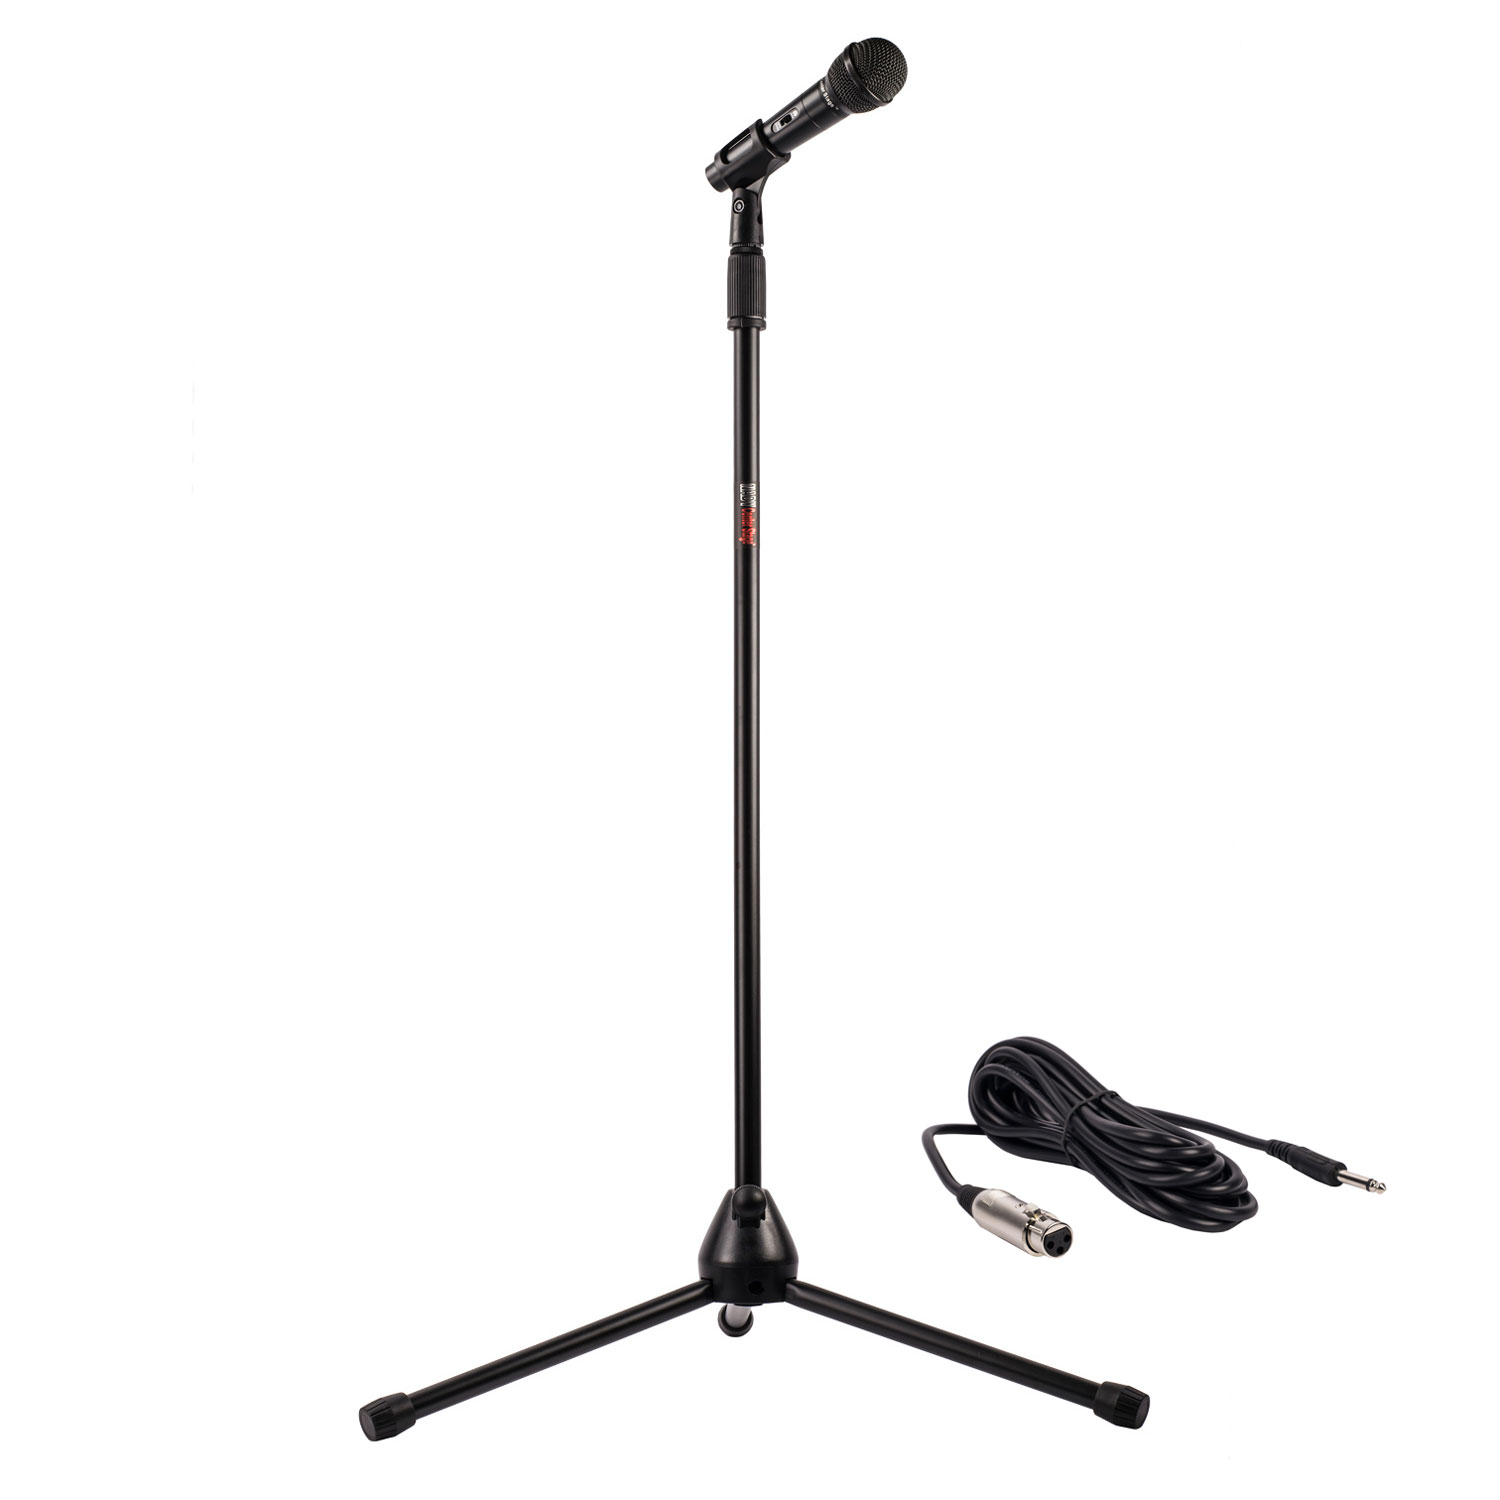 Centerstage Msc3 Microphone And Microphone Stand Kit